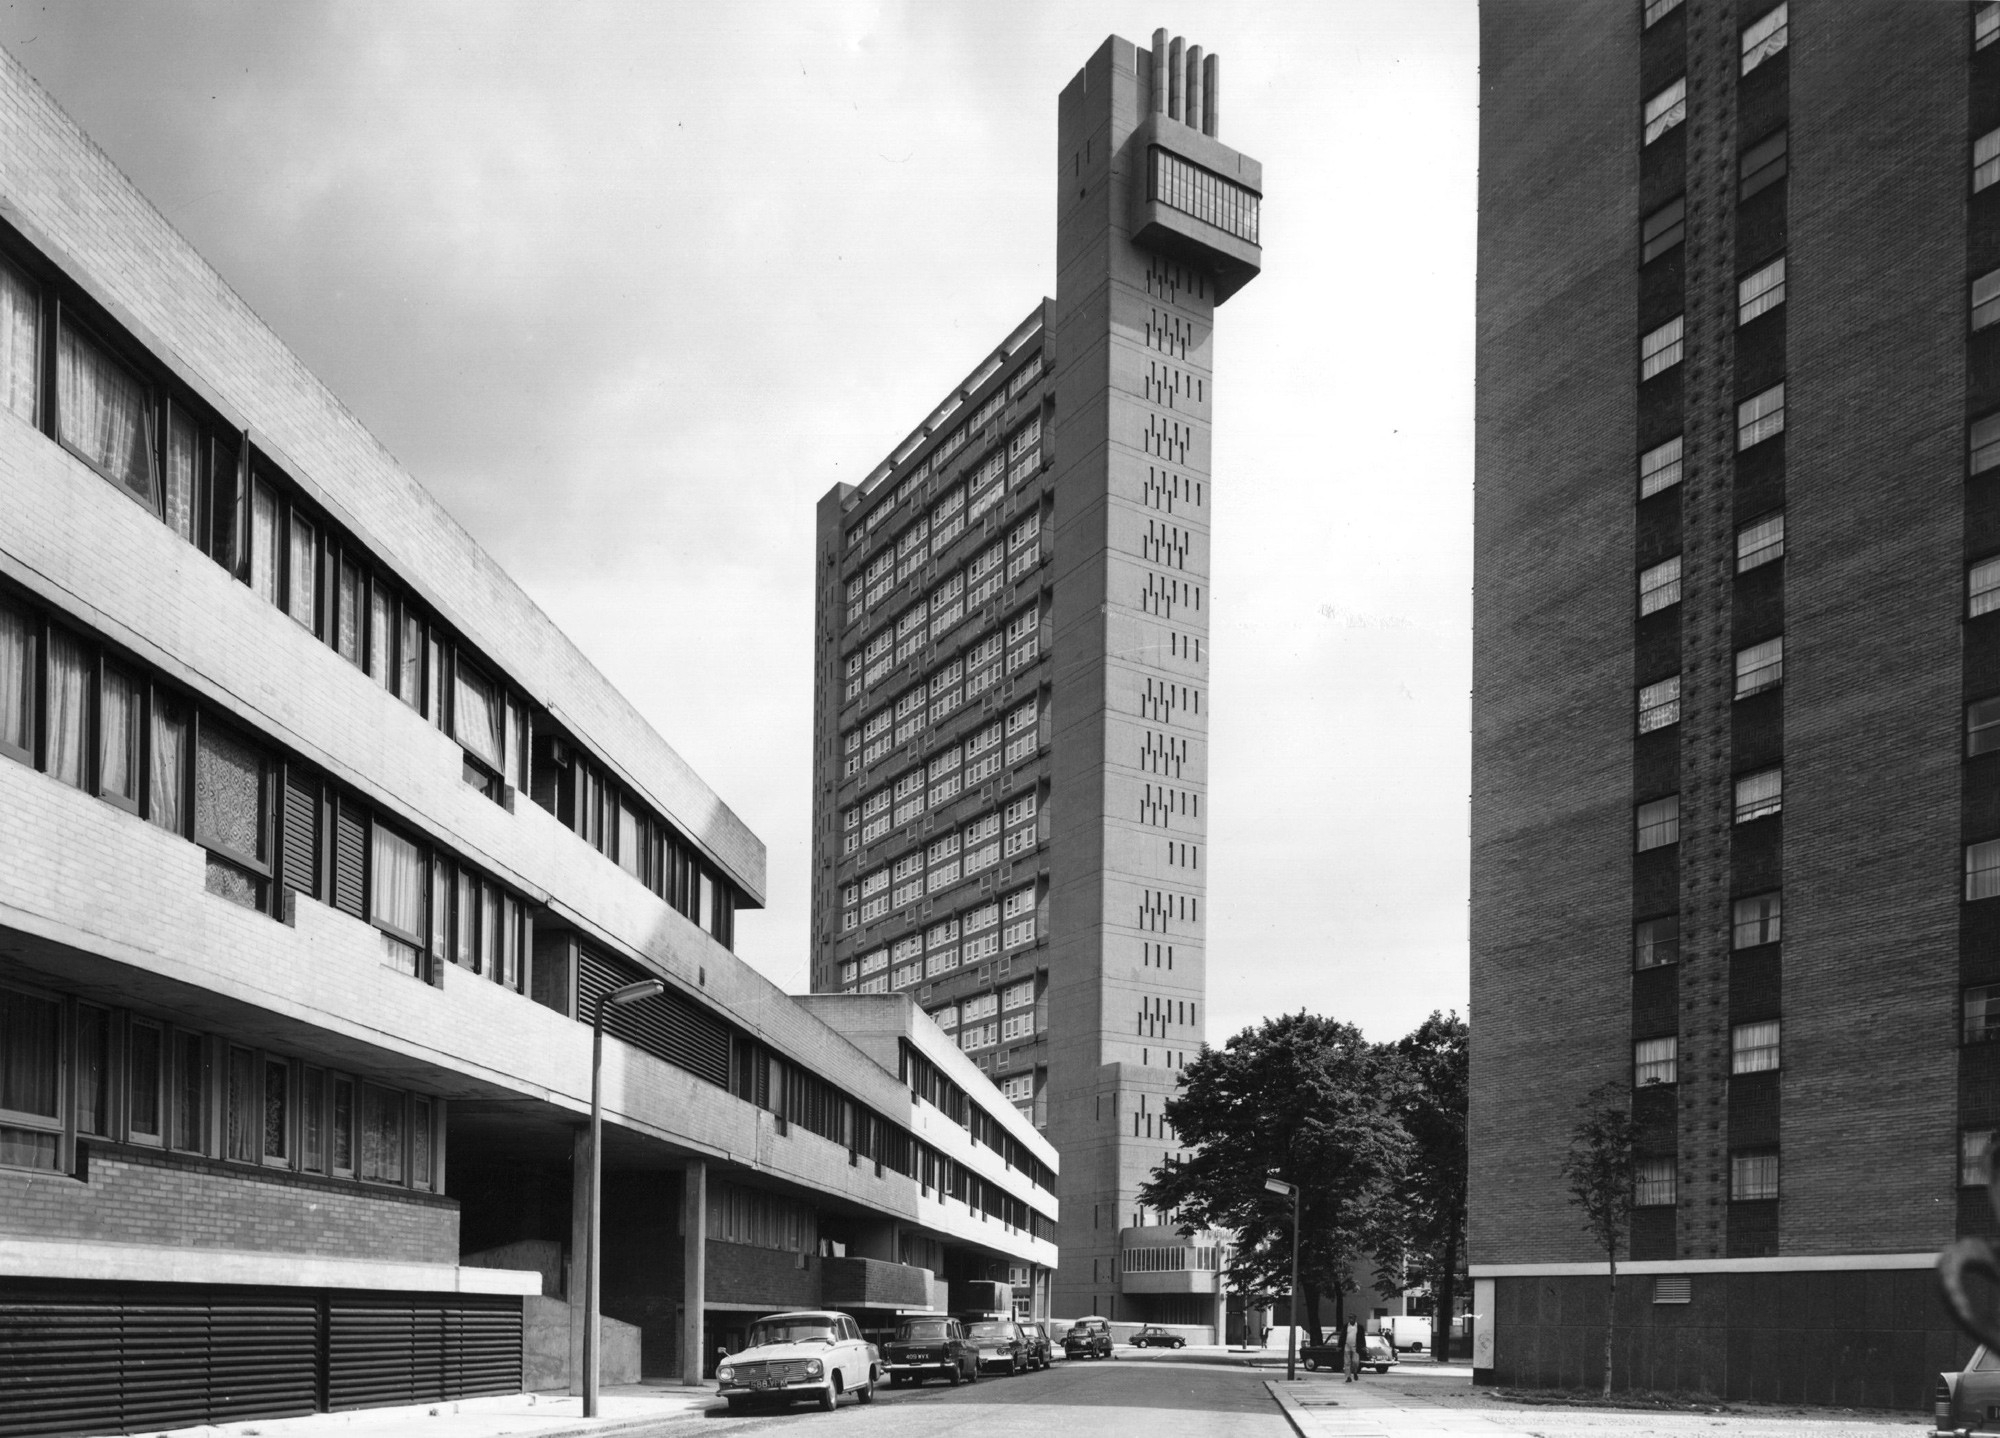 Photograph of the Trellick Tower, designed by Ernö Goldfinger